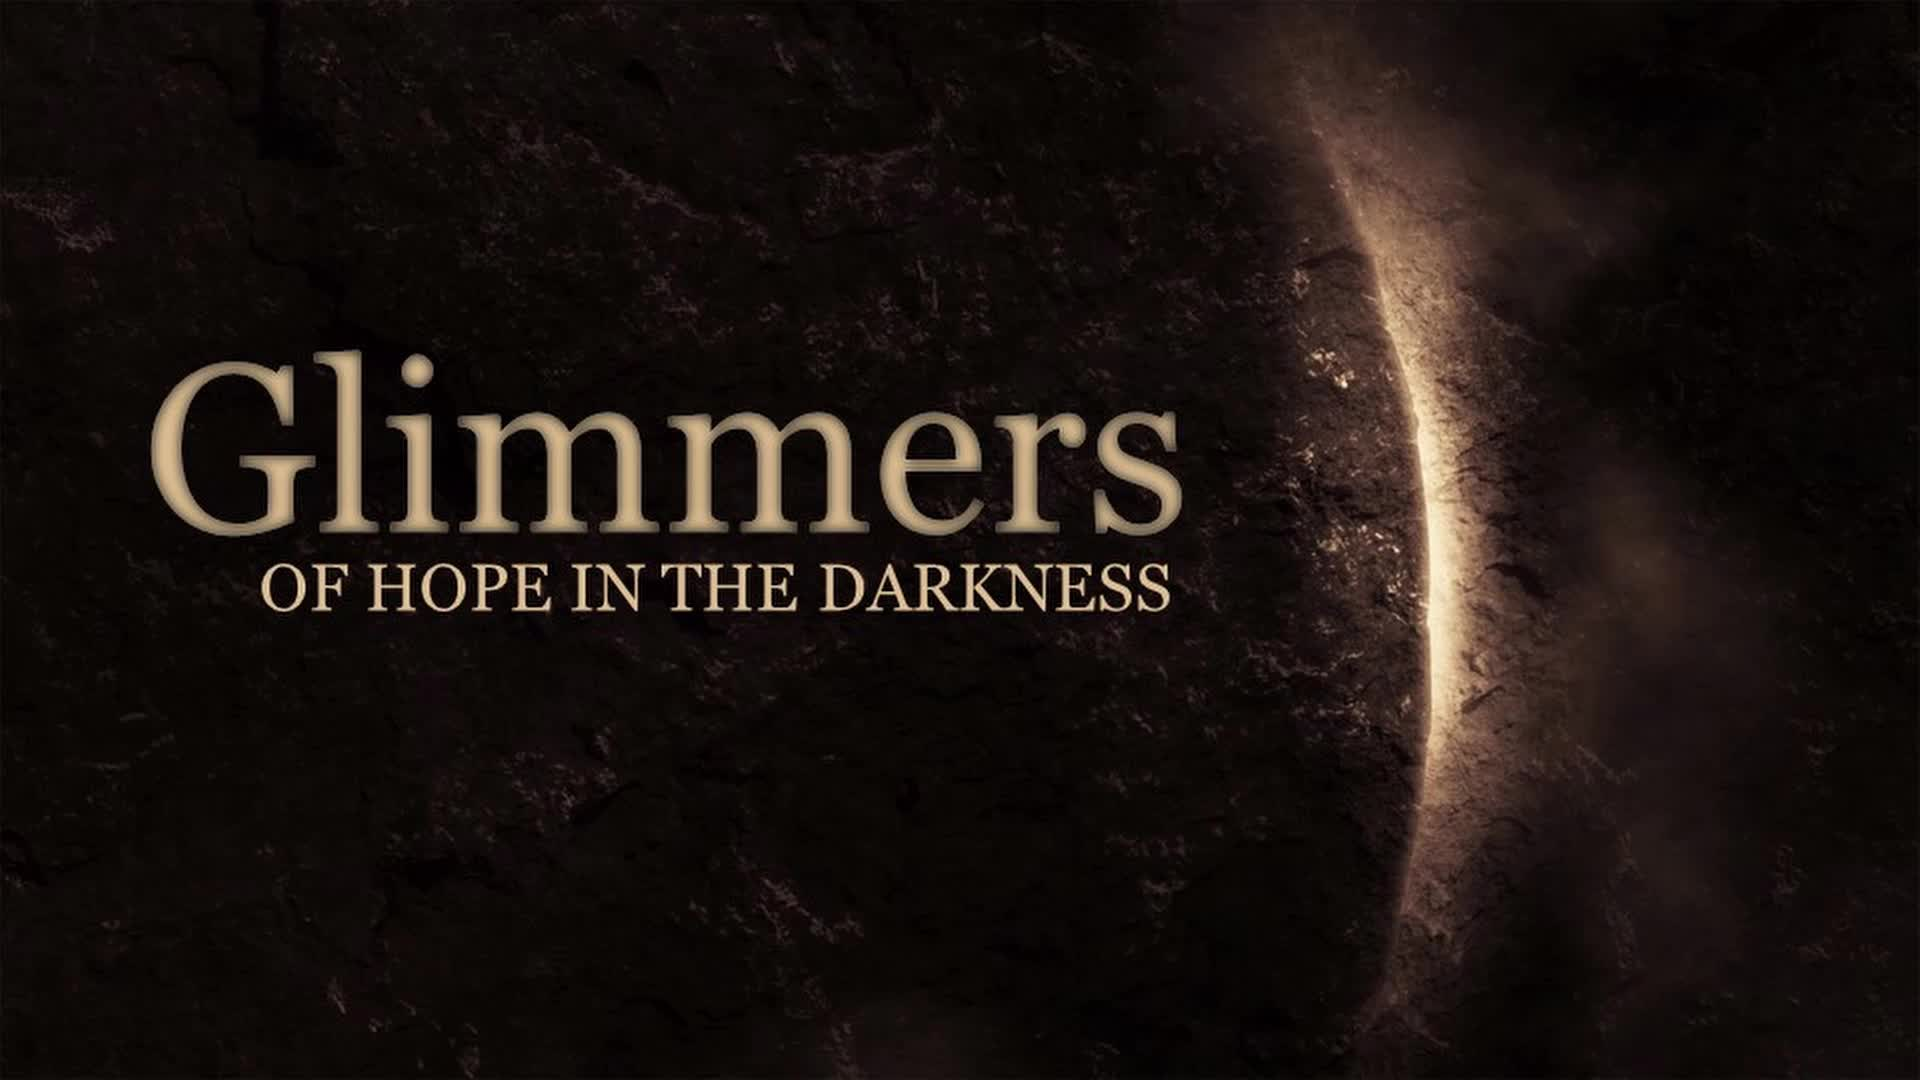 Glimmers of Hope in the Darkness